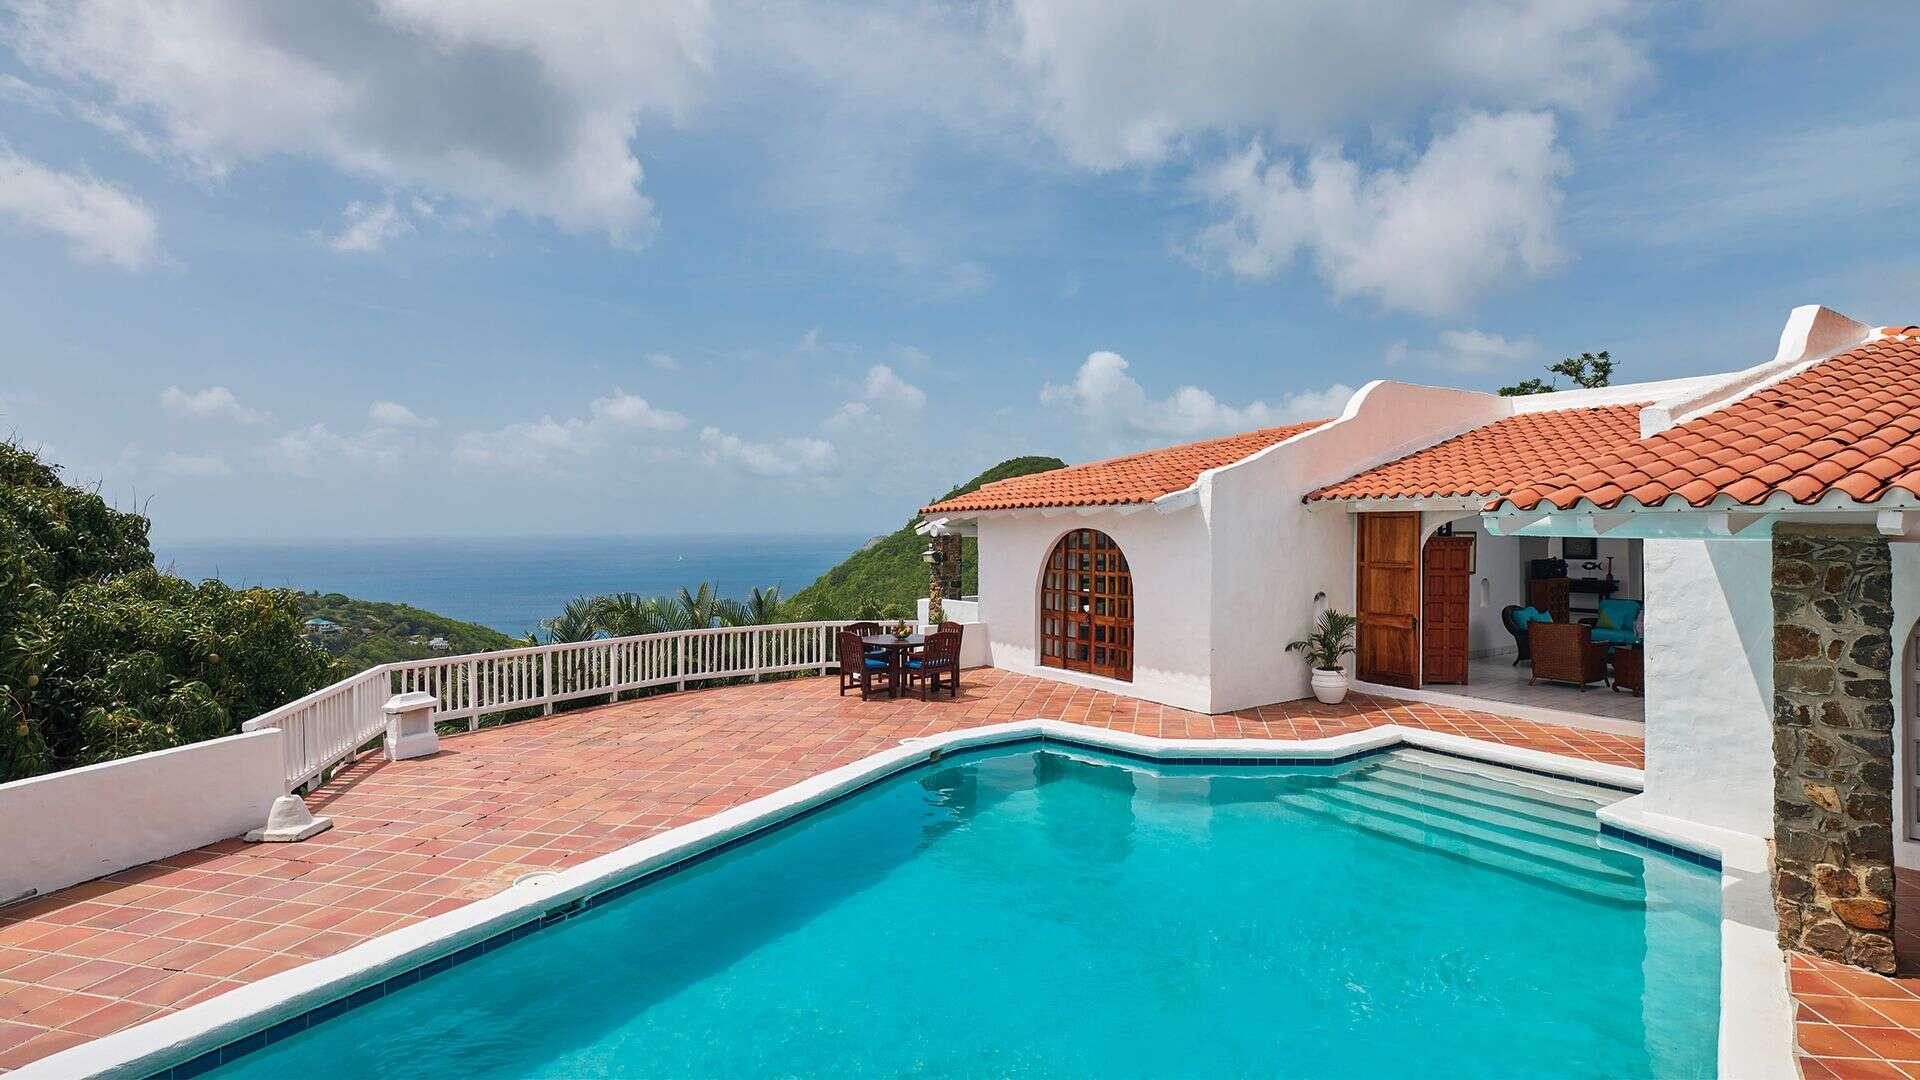 Luxury villa rentals caribbean - St lucia - Windjammer landing beach resort - No location 4 - Premium Four Bedroom Ocean View Villa - Image 1/16